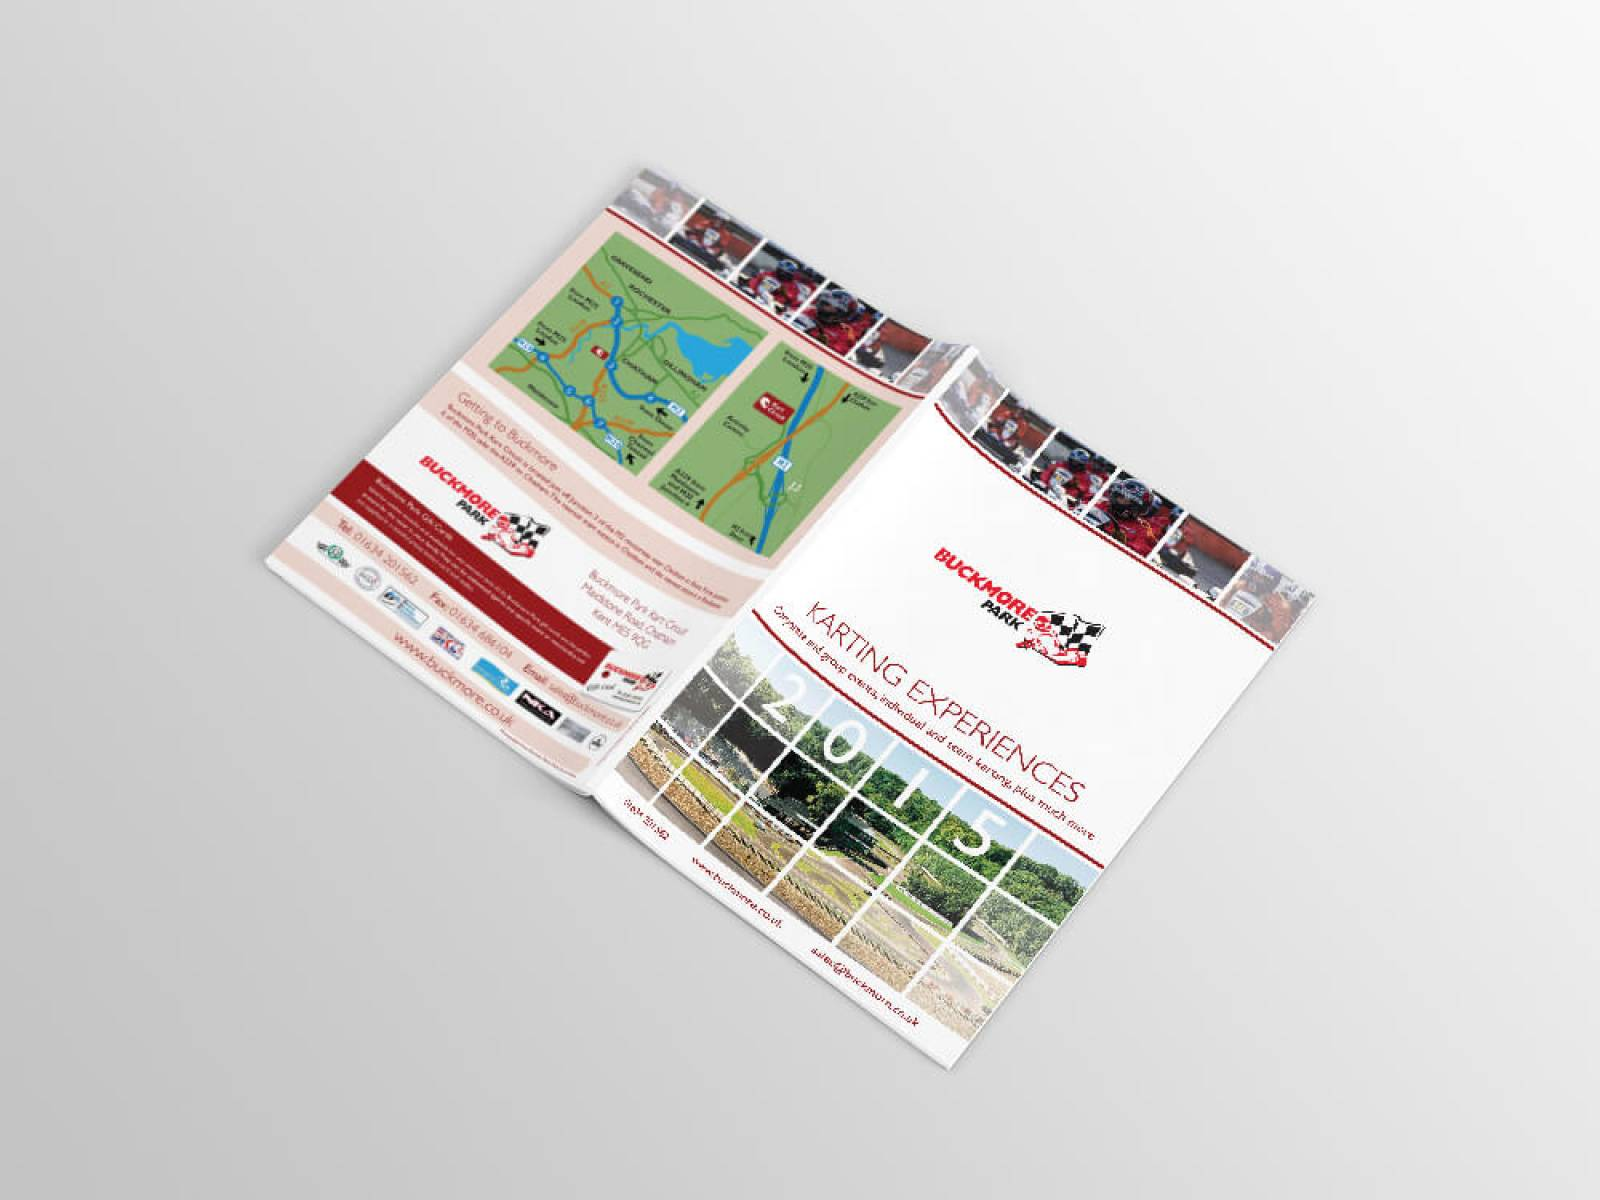 Buckmore-park-brochure-4-design-agency-graphic-design-canterbury.jpg